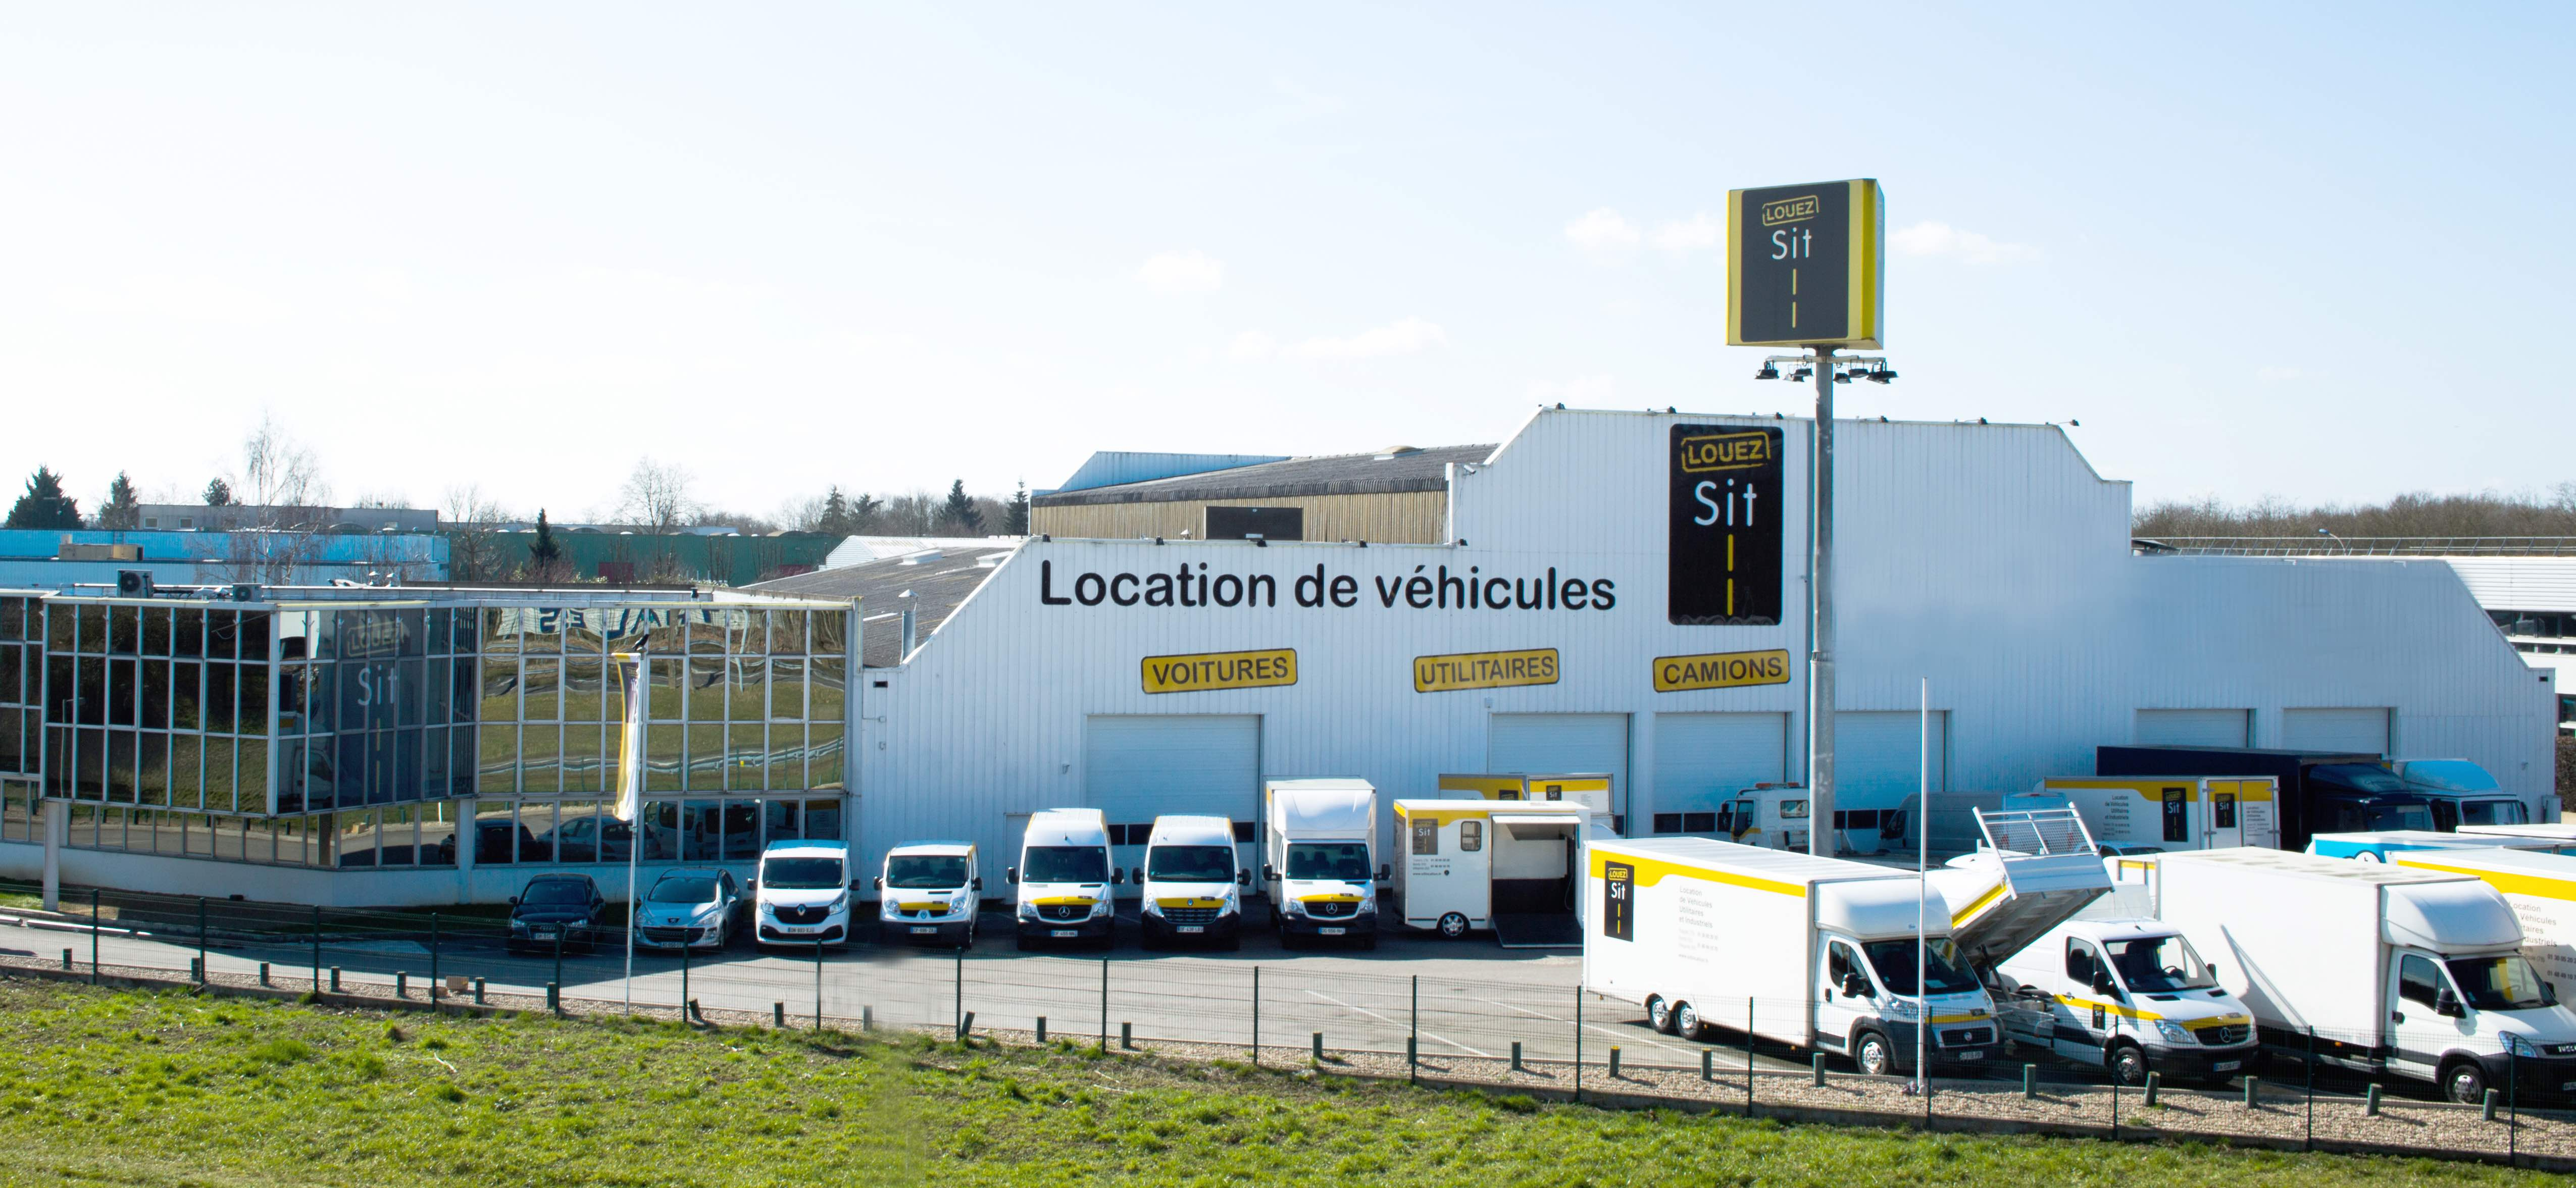 Le Meilleur Location Camion Chambery Location Porte Voiture Chambery Ce Mois Ci